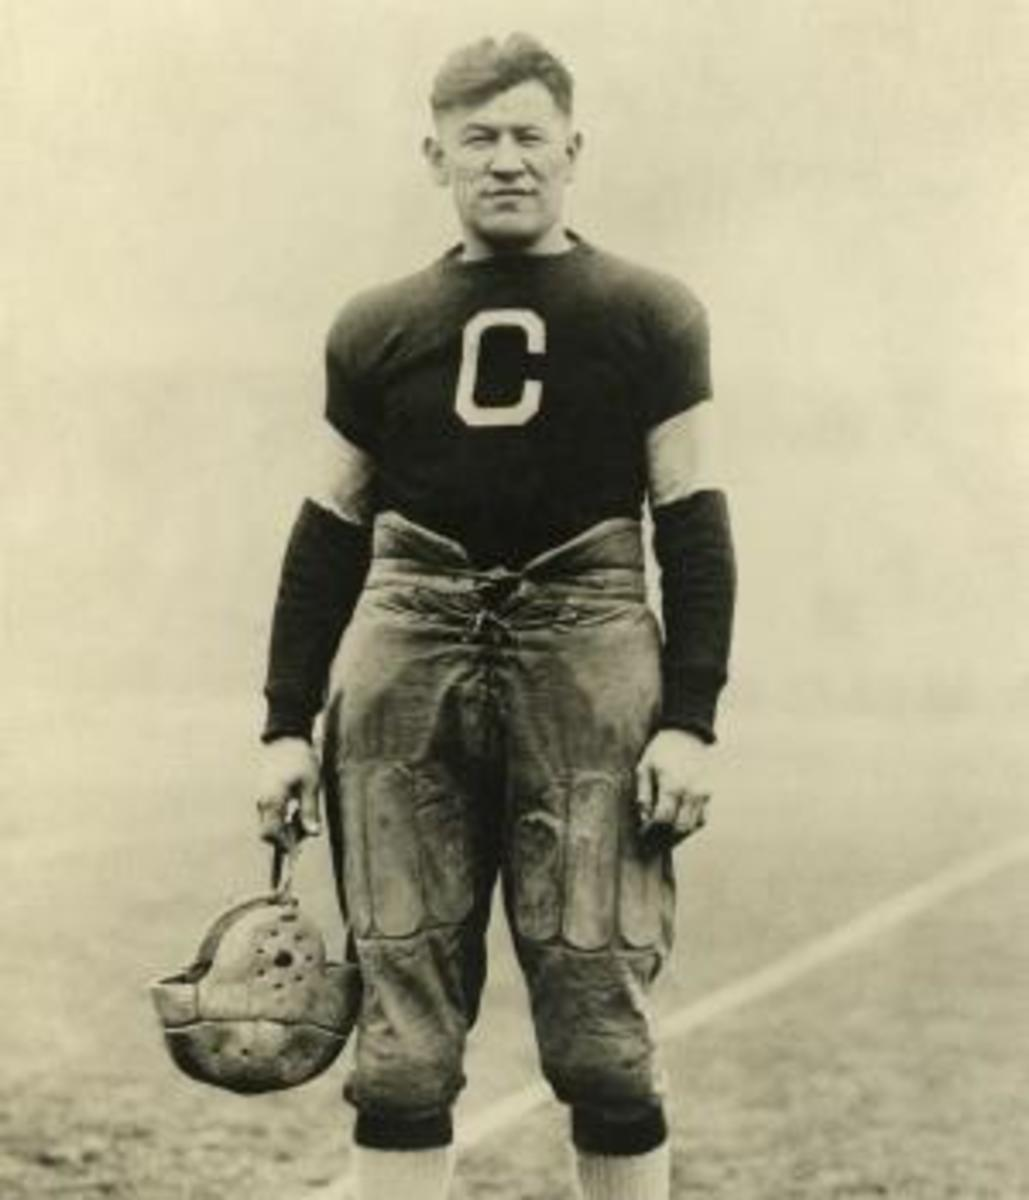 Jim Thorpe, first president of the APFA, during his playing days with the Canton Bulldogs.